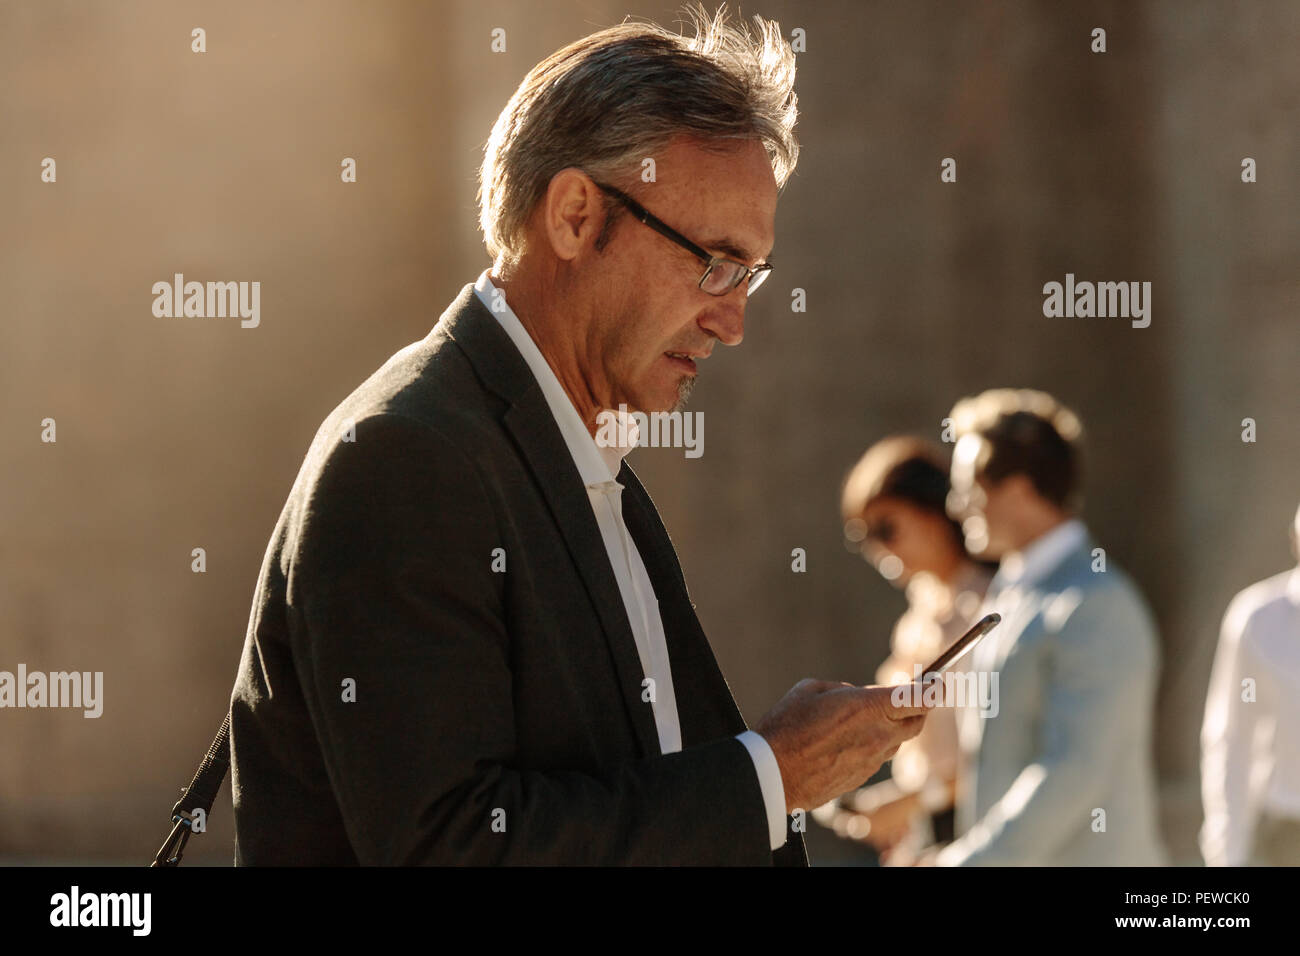 Man in formal clothes looking at his mobile phone while commuting to office. Busy office going person walking on street and using his mobile phone. - Stock Image